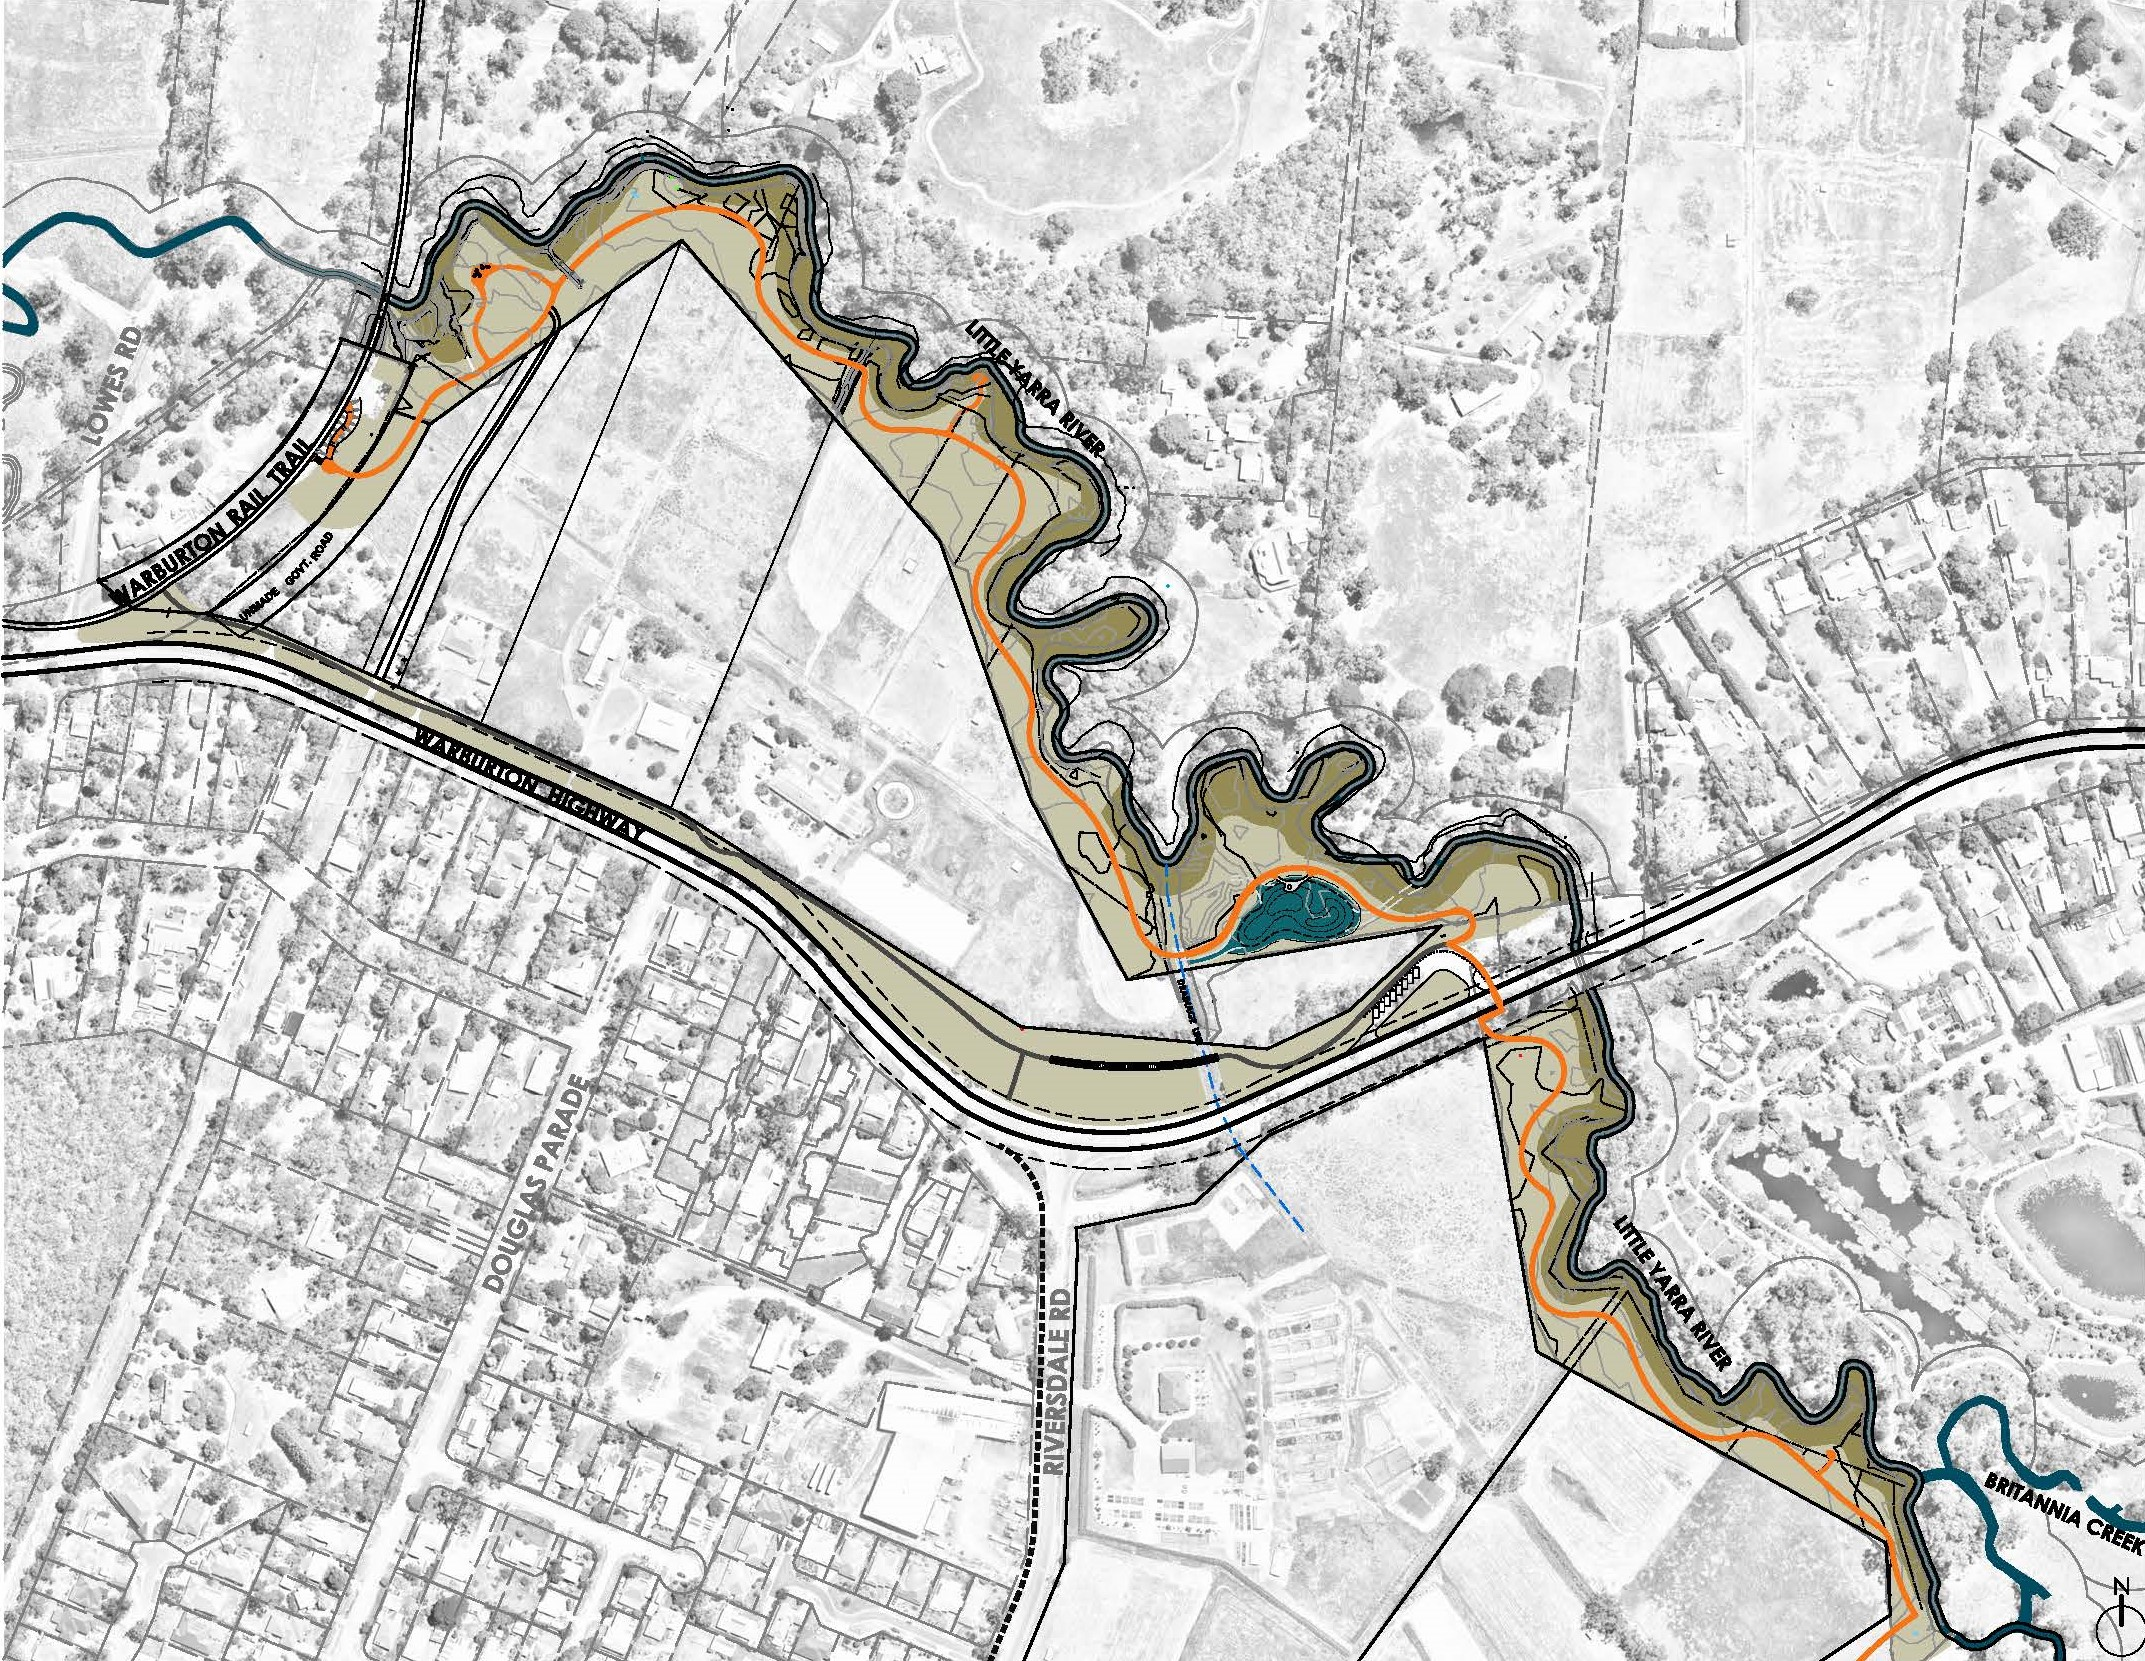 Stylised map showing new trail path connection along Little Yarra River